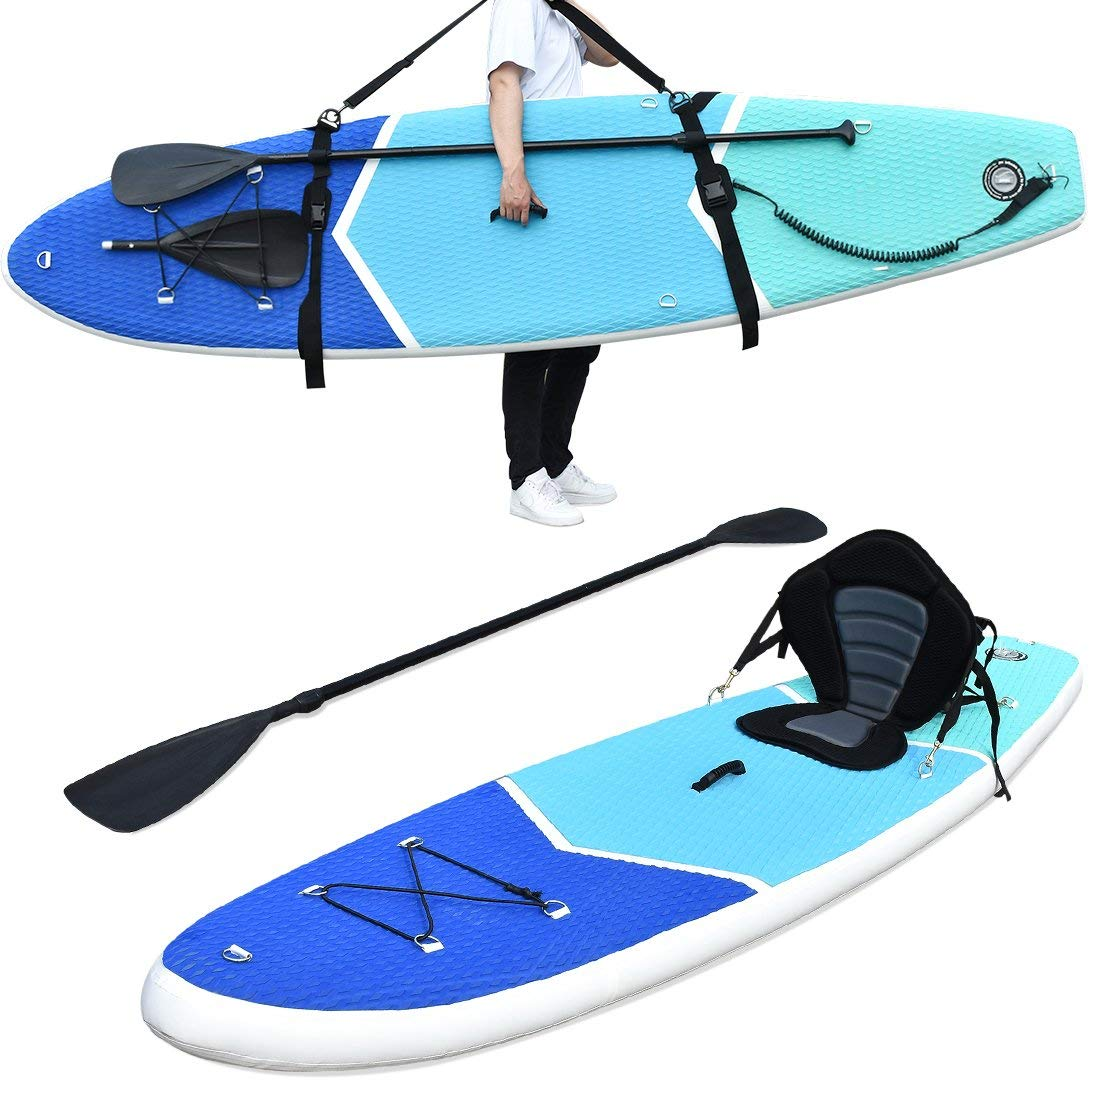 "Zupapa All in One Inflatable Stand Up Paddle Board 6"" Thick 10' Non-Slip Deck with Kayak Conversion Kit, Shoulder Strap, Backpack, Coil Leash, Pump"